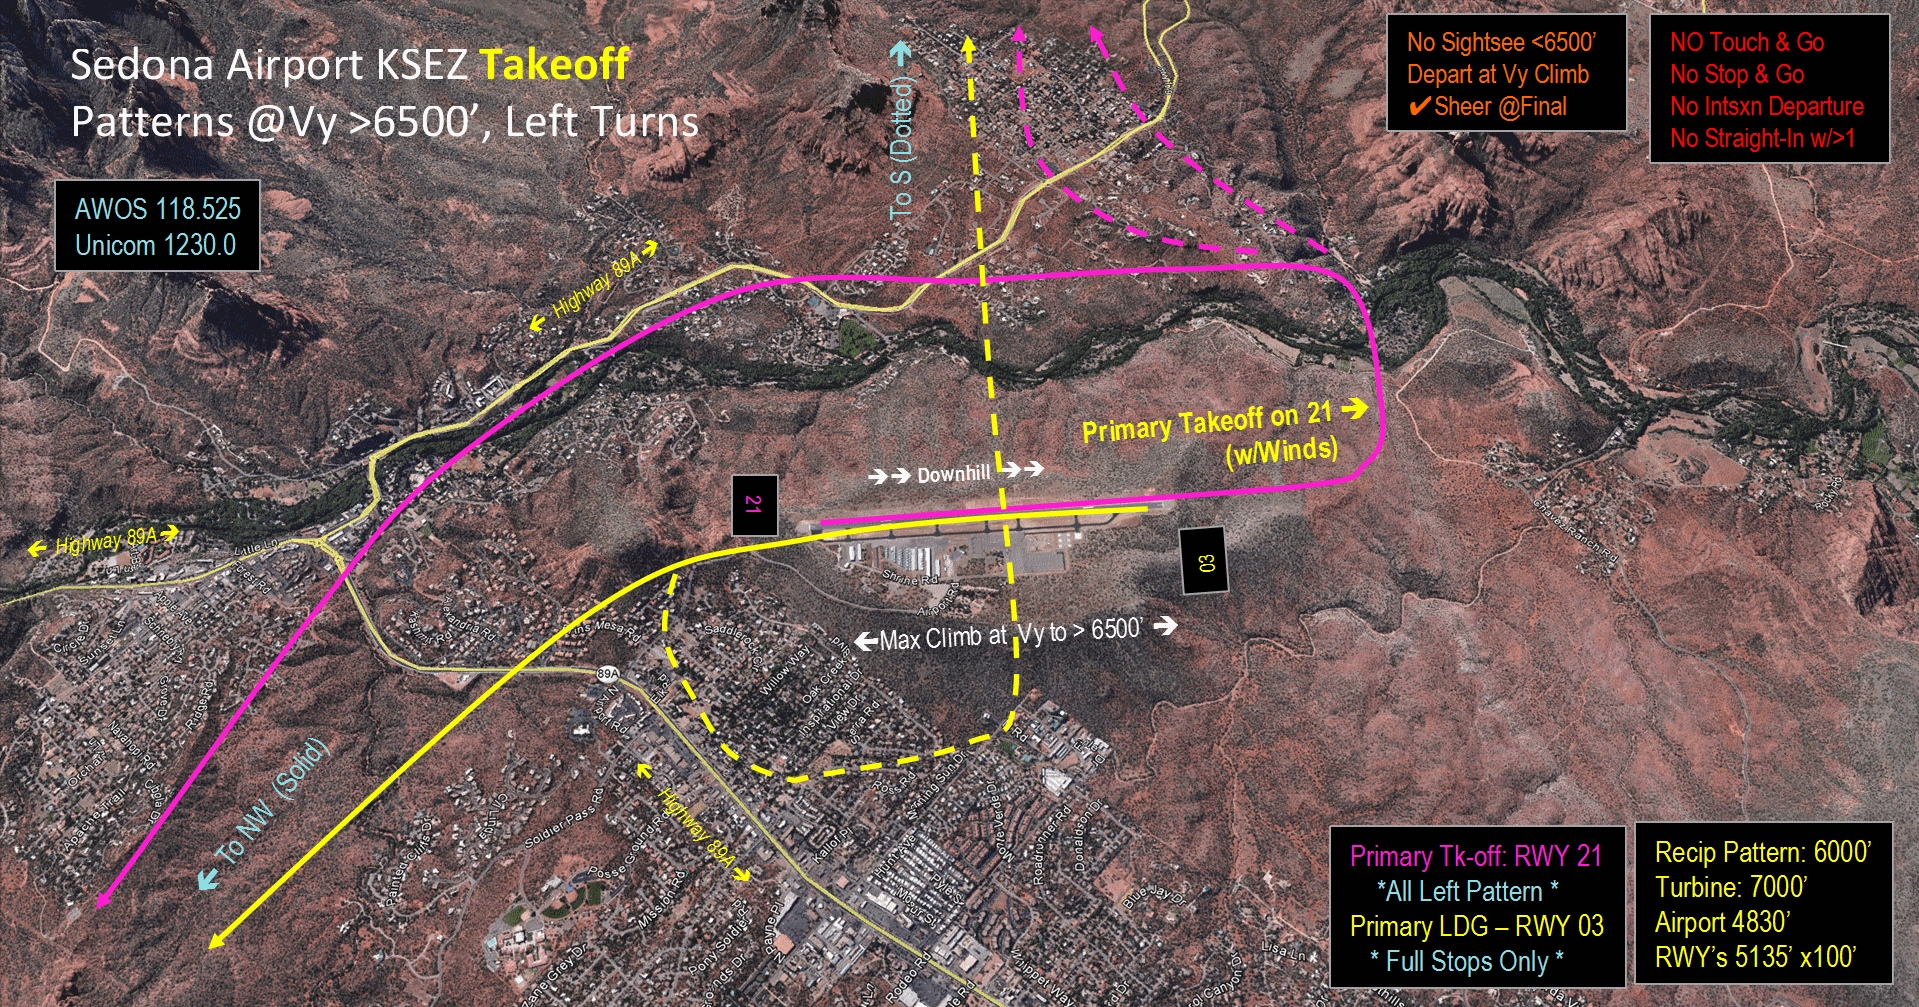 Takeoff Procedures and Pattern for KSEZ to the North and South - CLICK for Noise Abatement Procedures